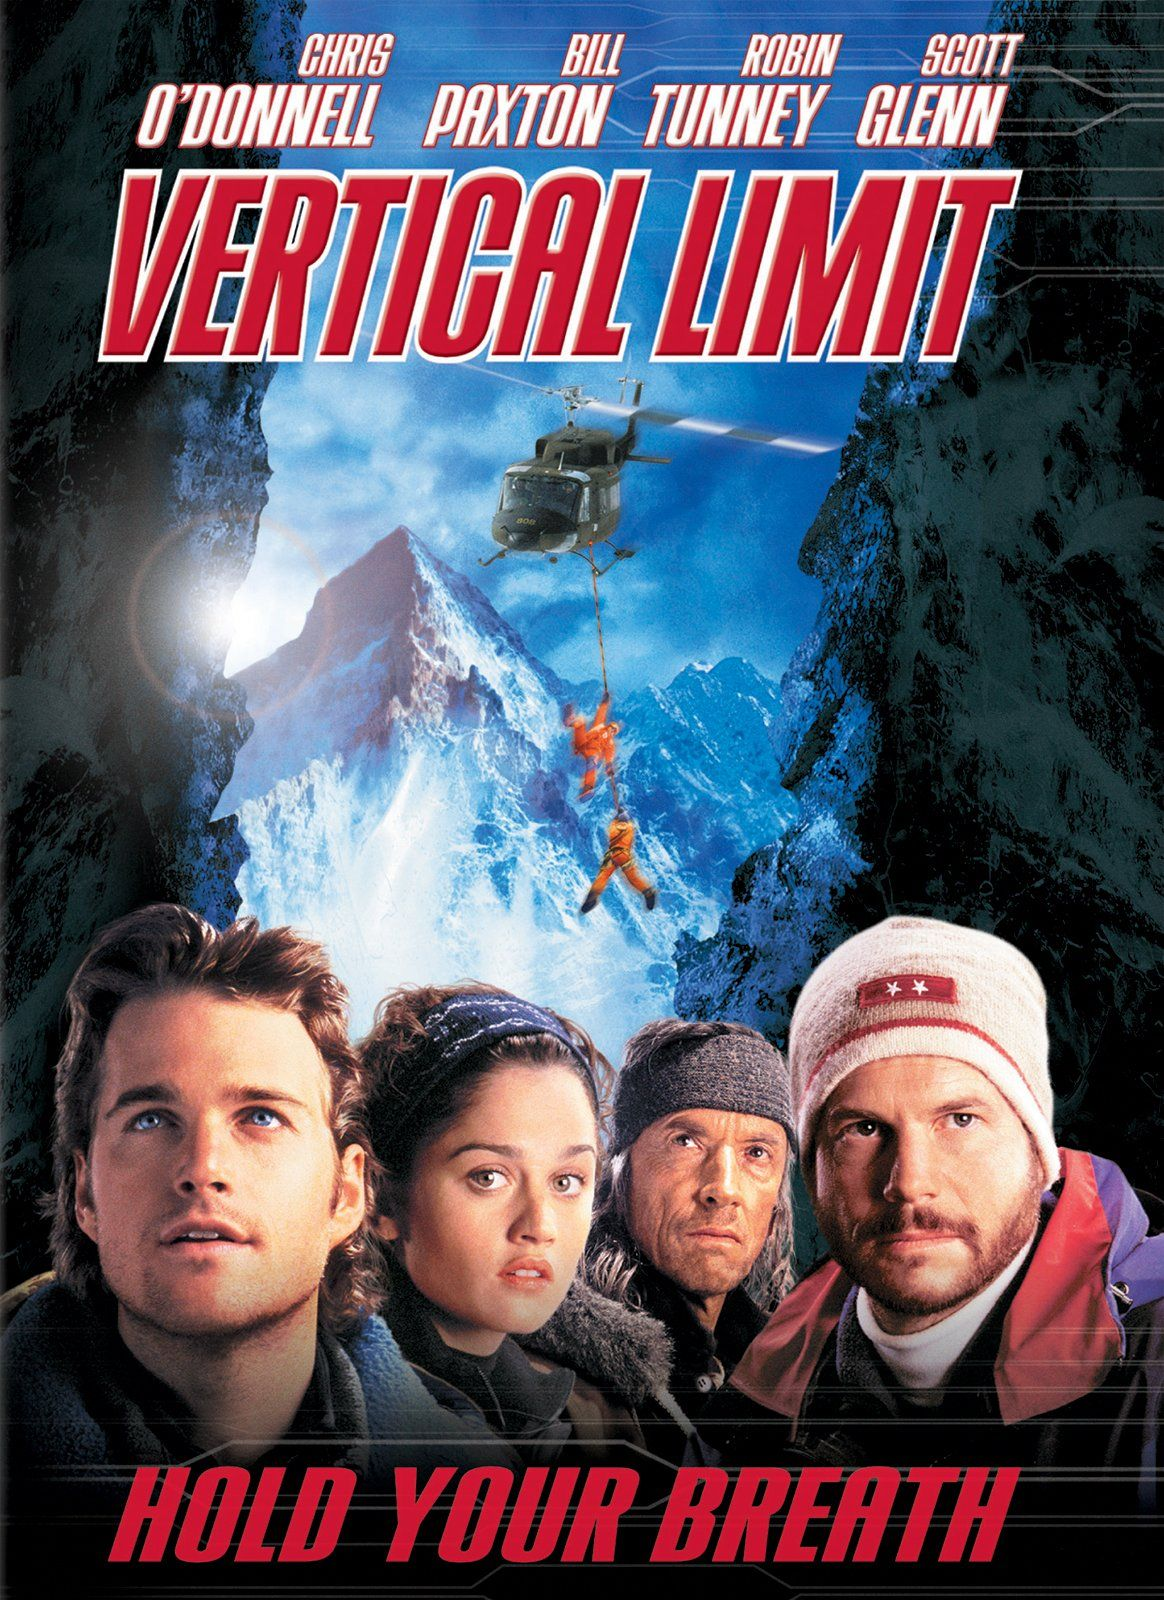 Pin by Ferrous Soh on 2019 Films Vertical limit, Winter